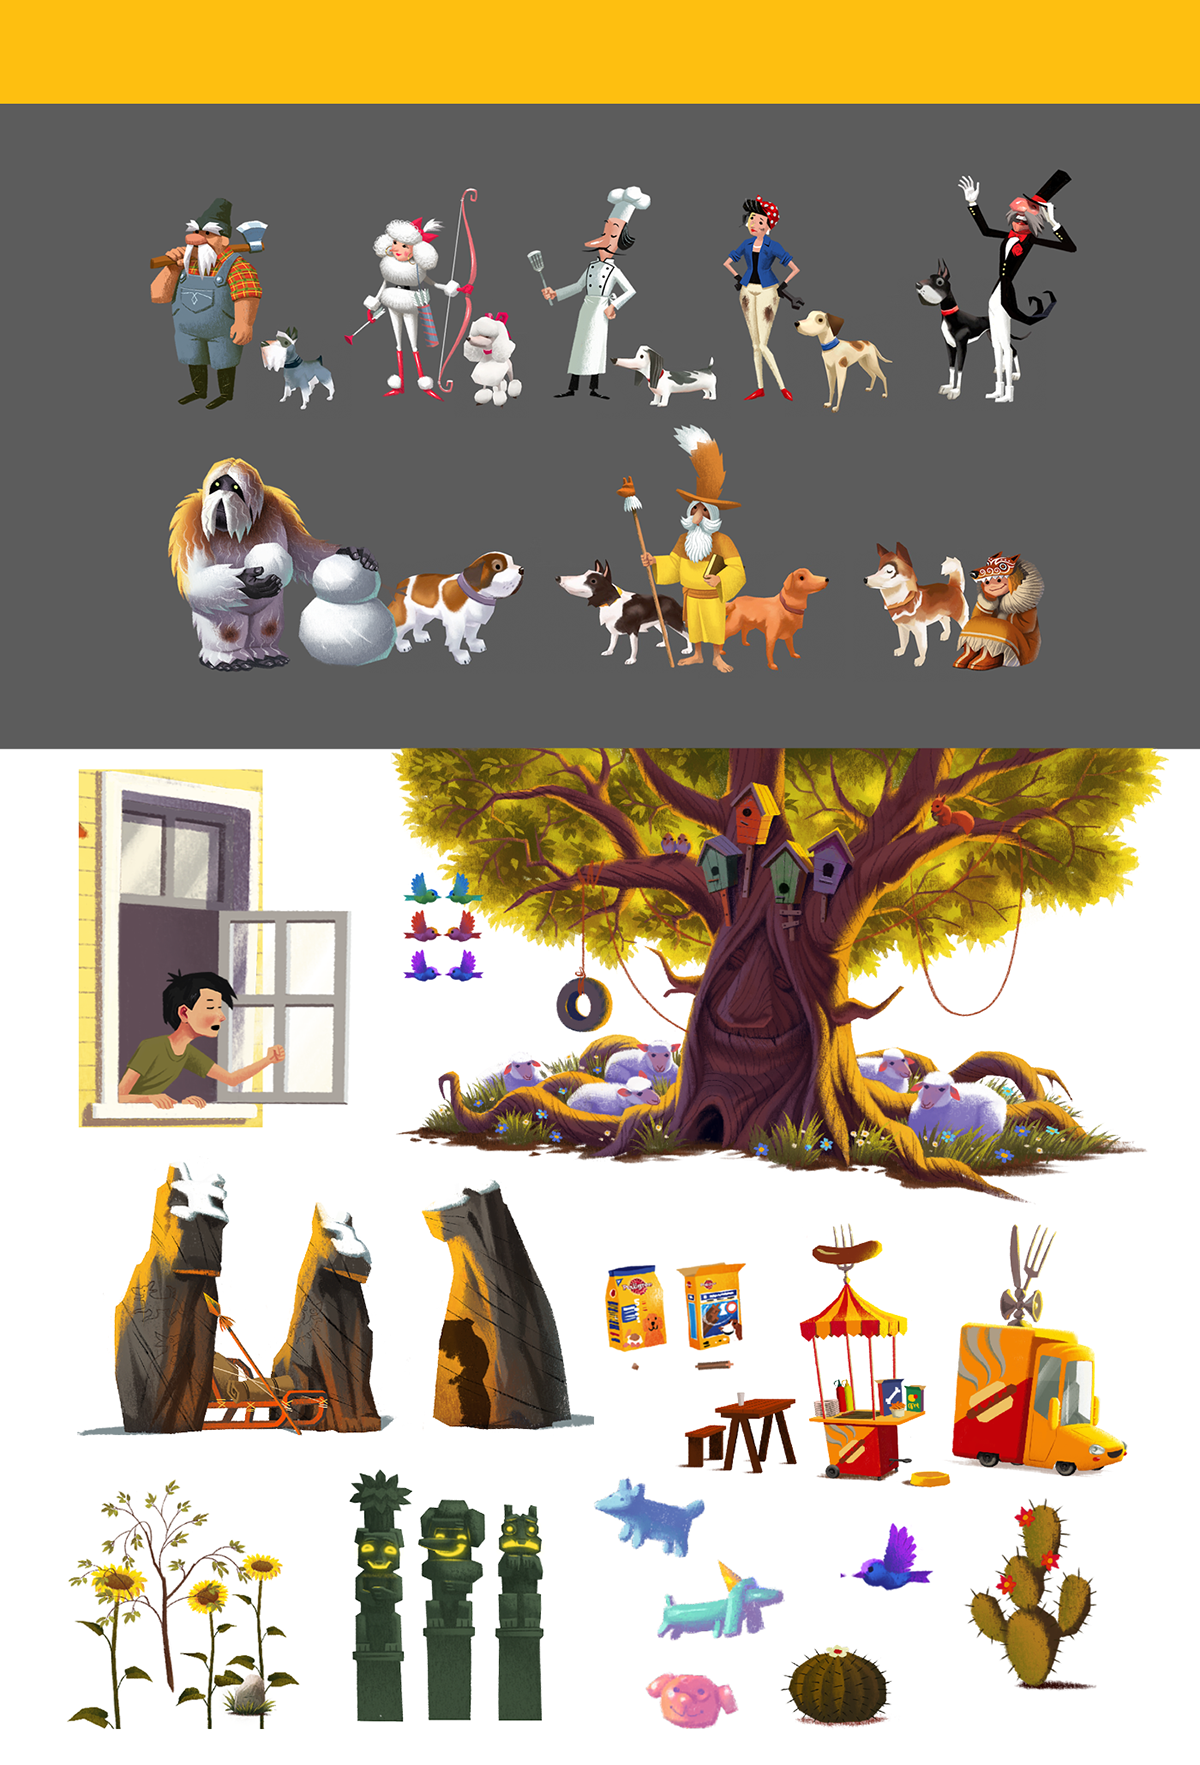 a dogs story pedigree app dog educational story interactive game characters childrens book